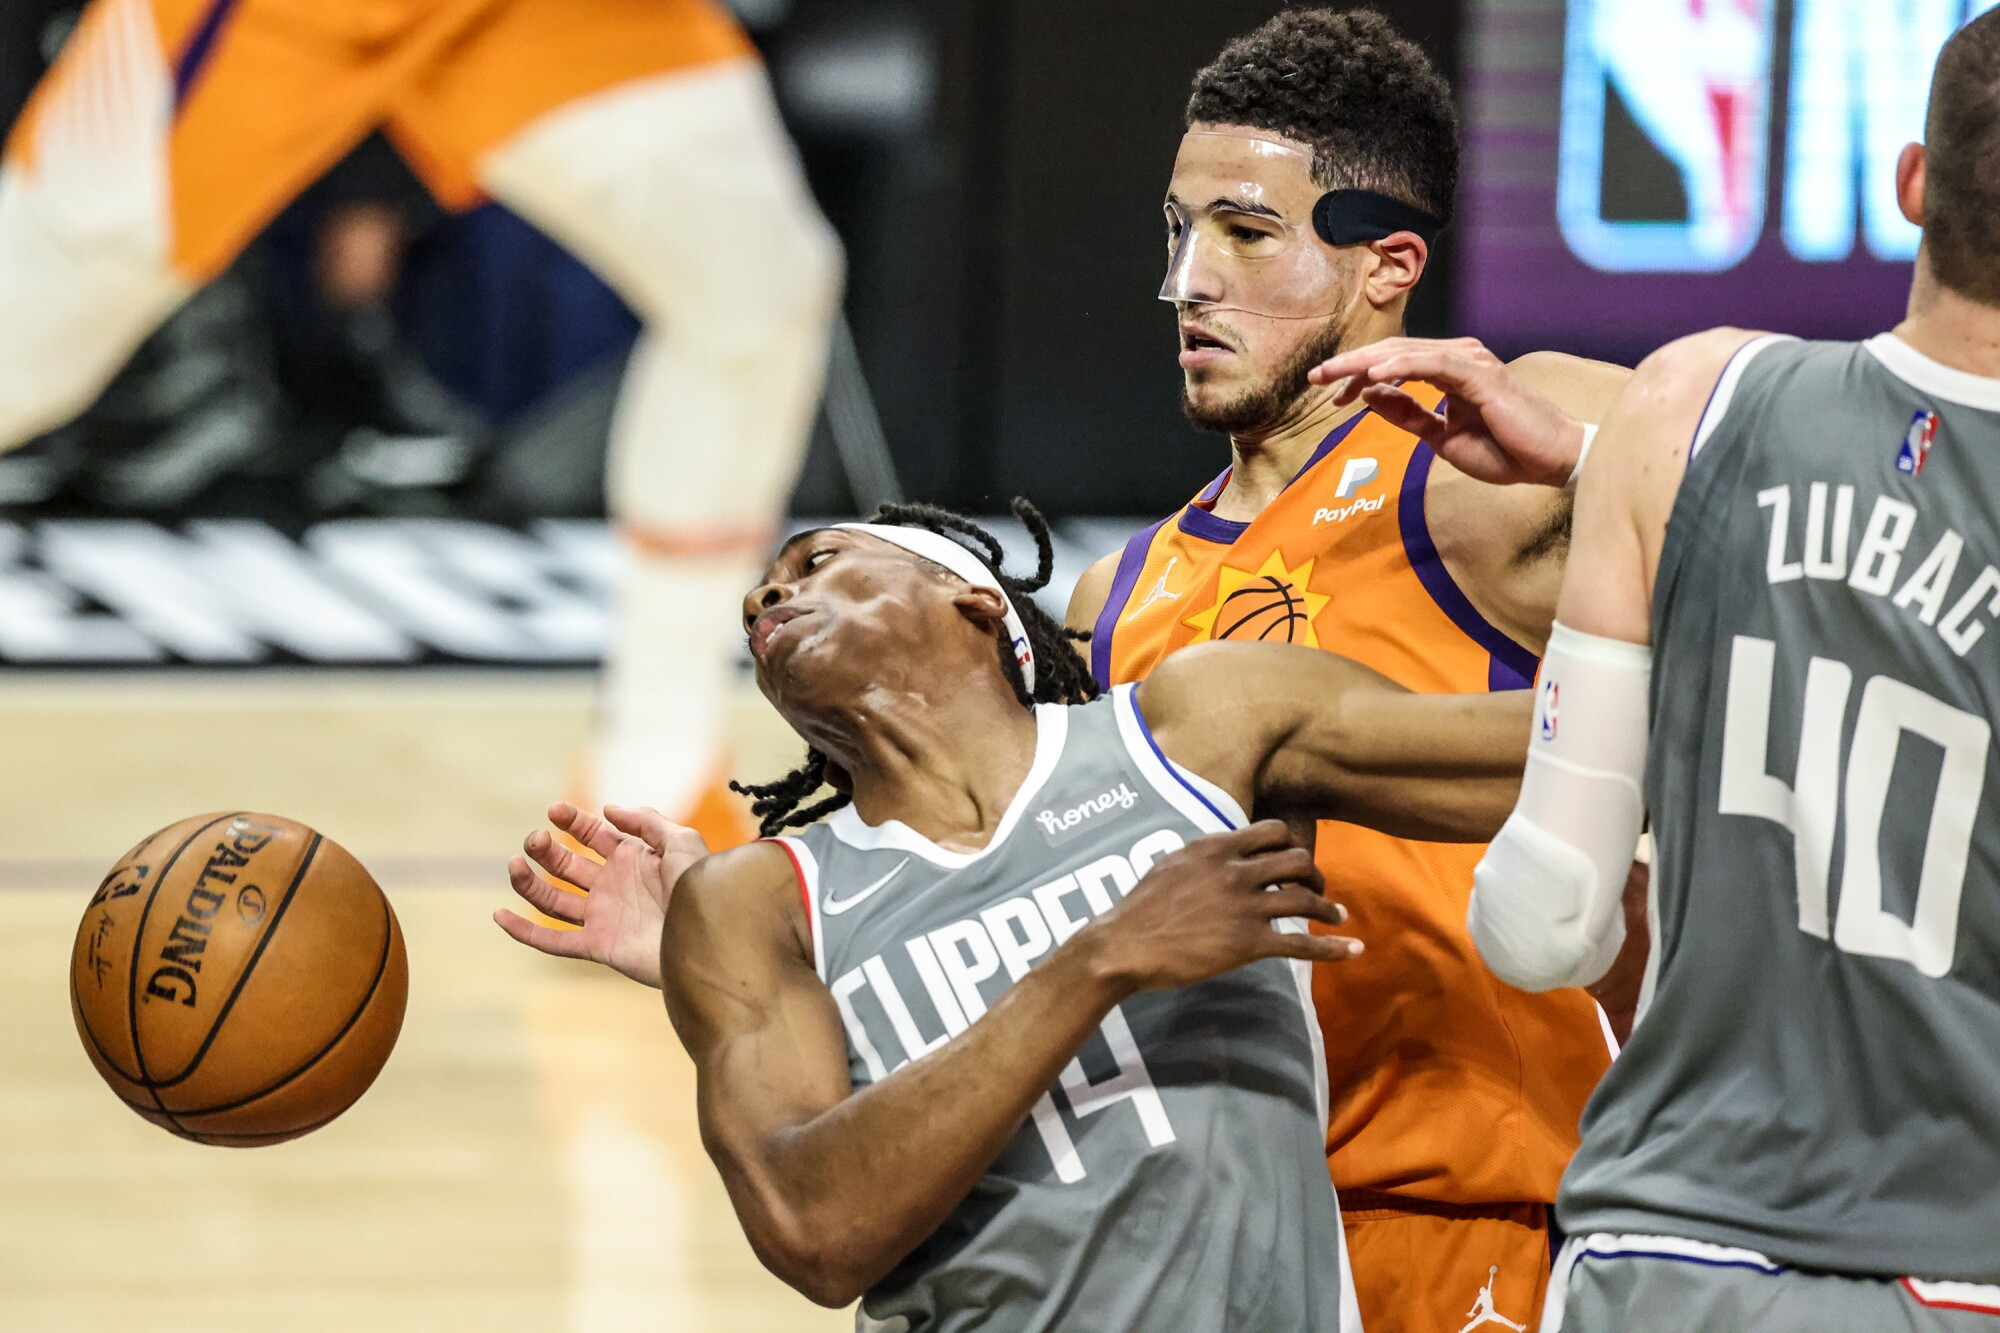 Clippers guard Terance Mann is fouled by Suns guard Devin Booker late in the first half of Game 4.